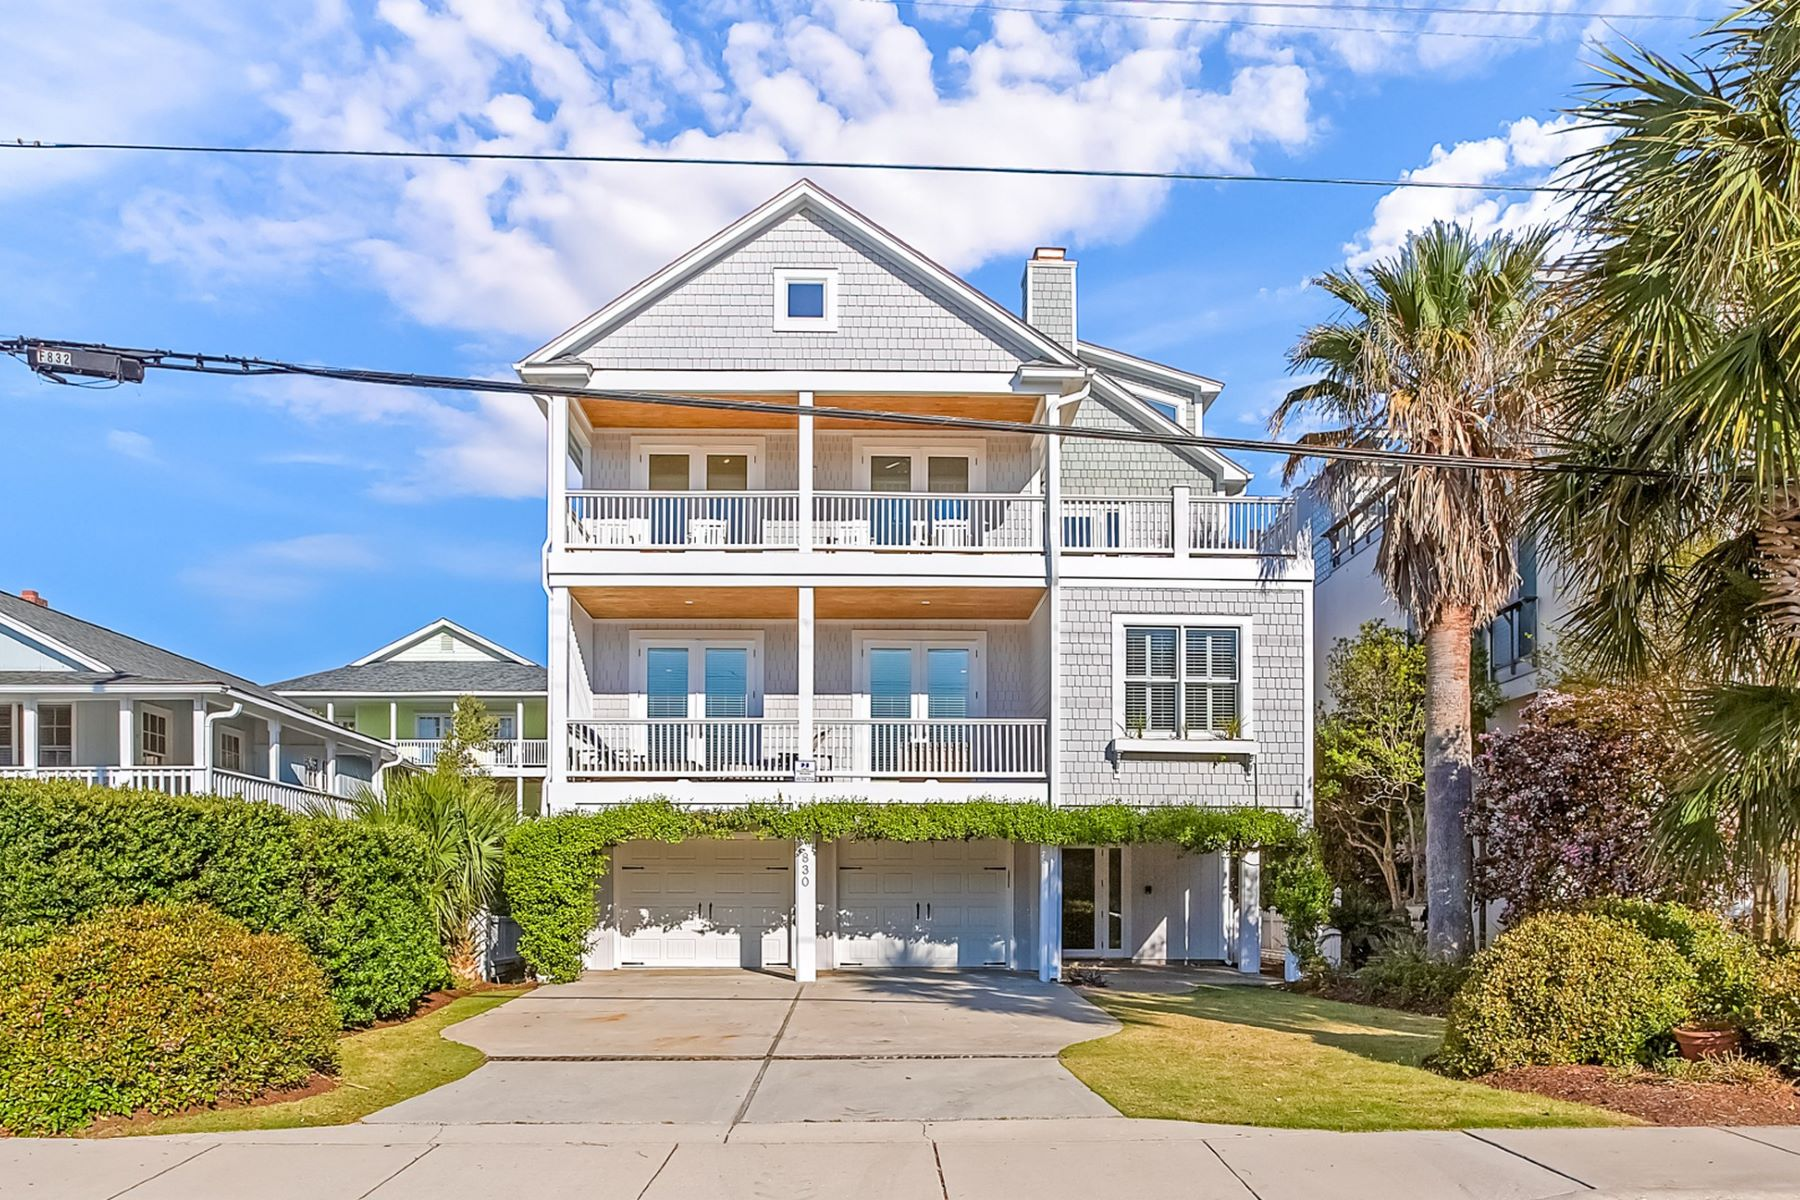 Single Family Homes for Sale at Wrightsville Beach Ocean Views 830 S Lumina Ave. Wrightsville Beach, North Carolina 28480 United States